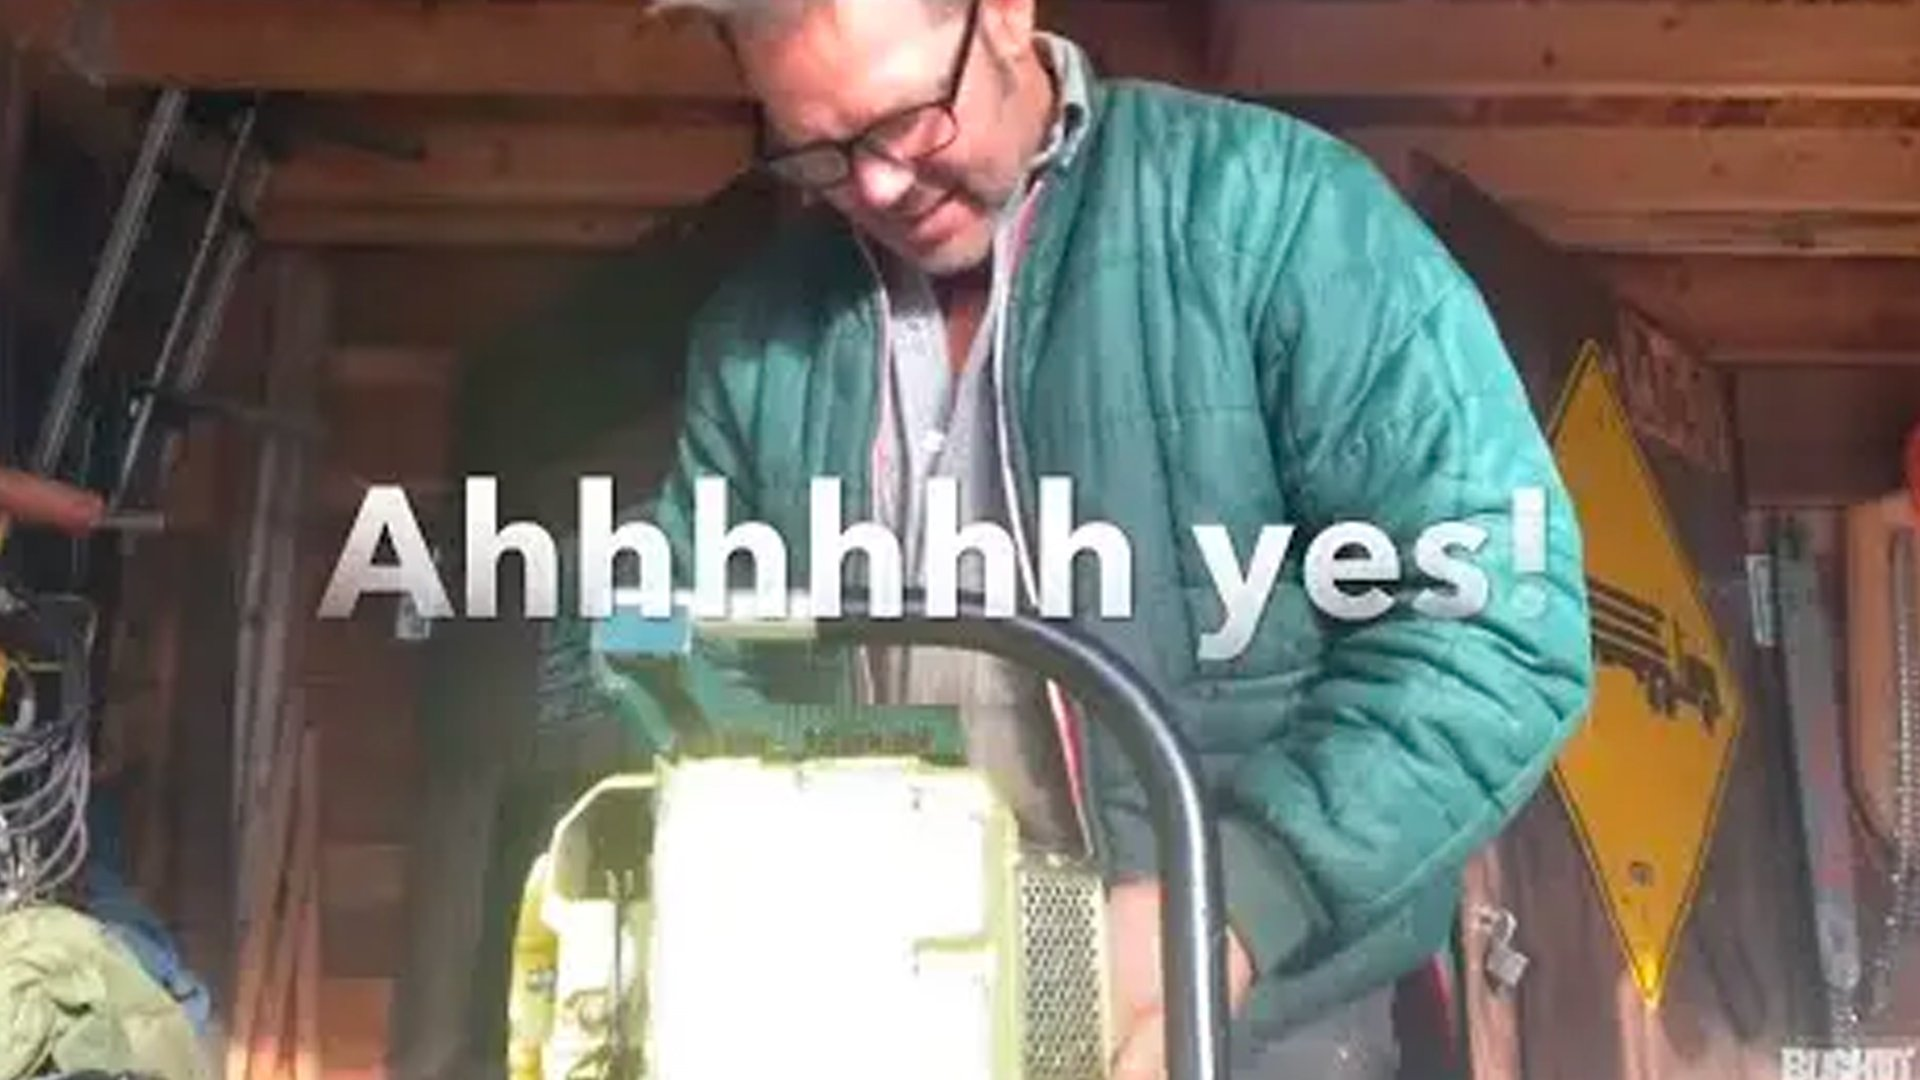 Unboxing-special-chain-saw.-And-swingin-a-true-Buckin-Special